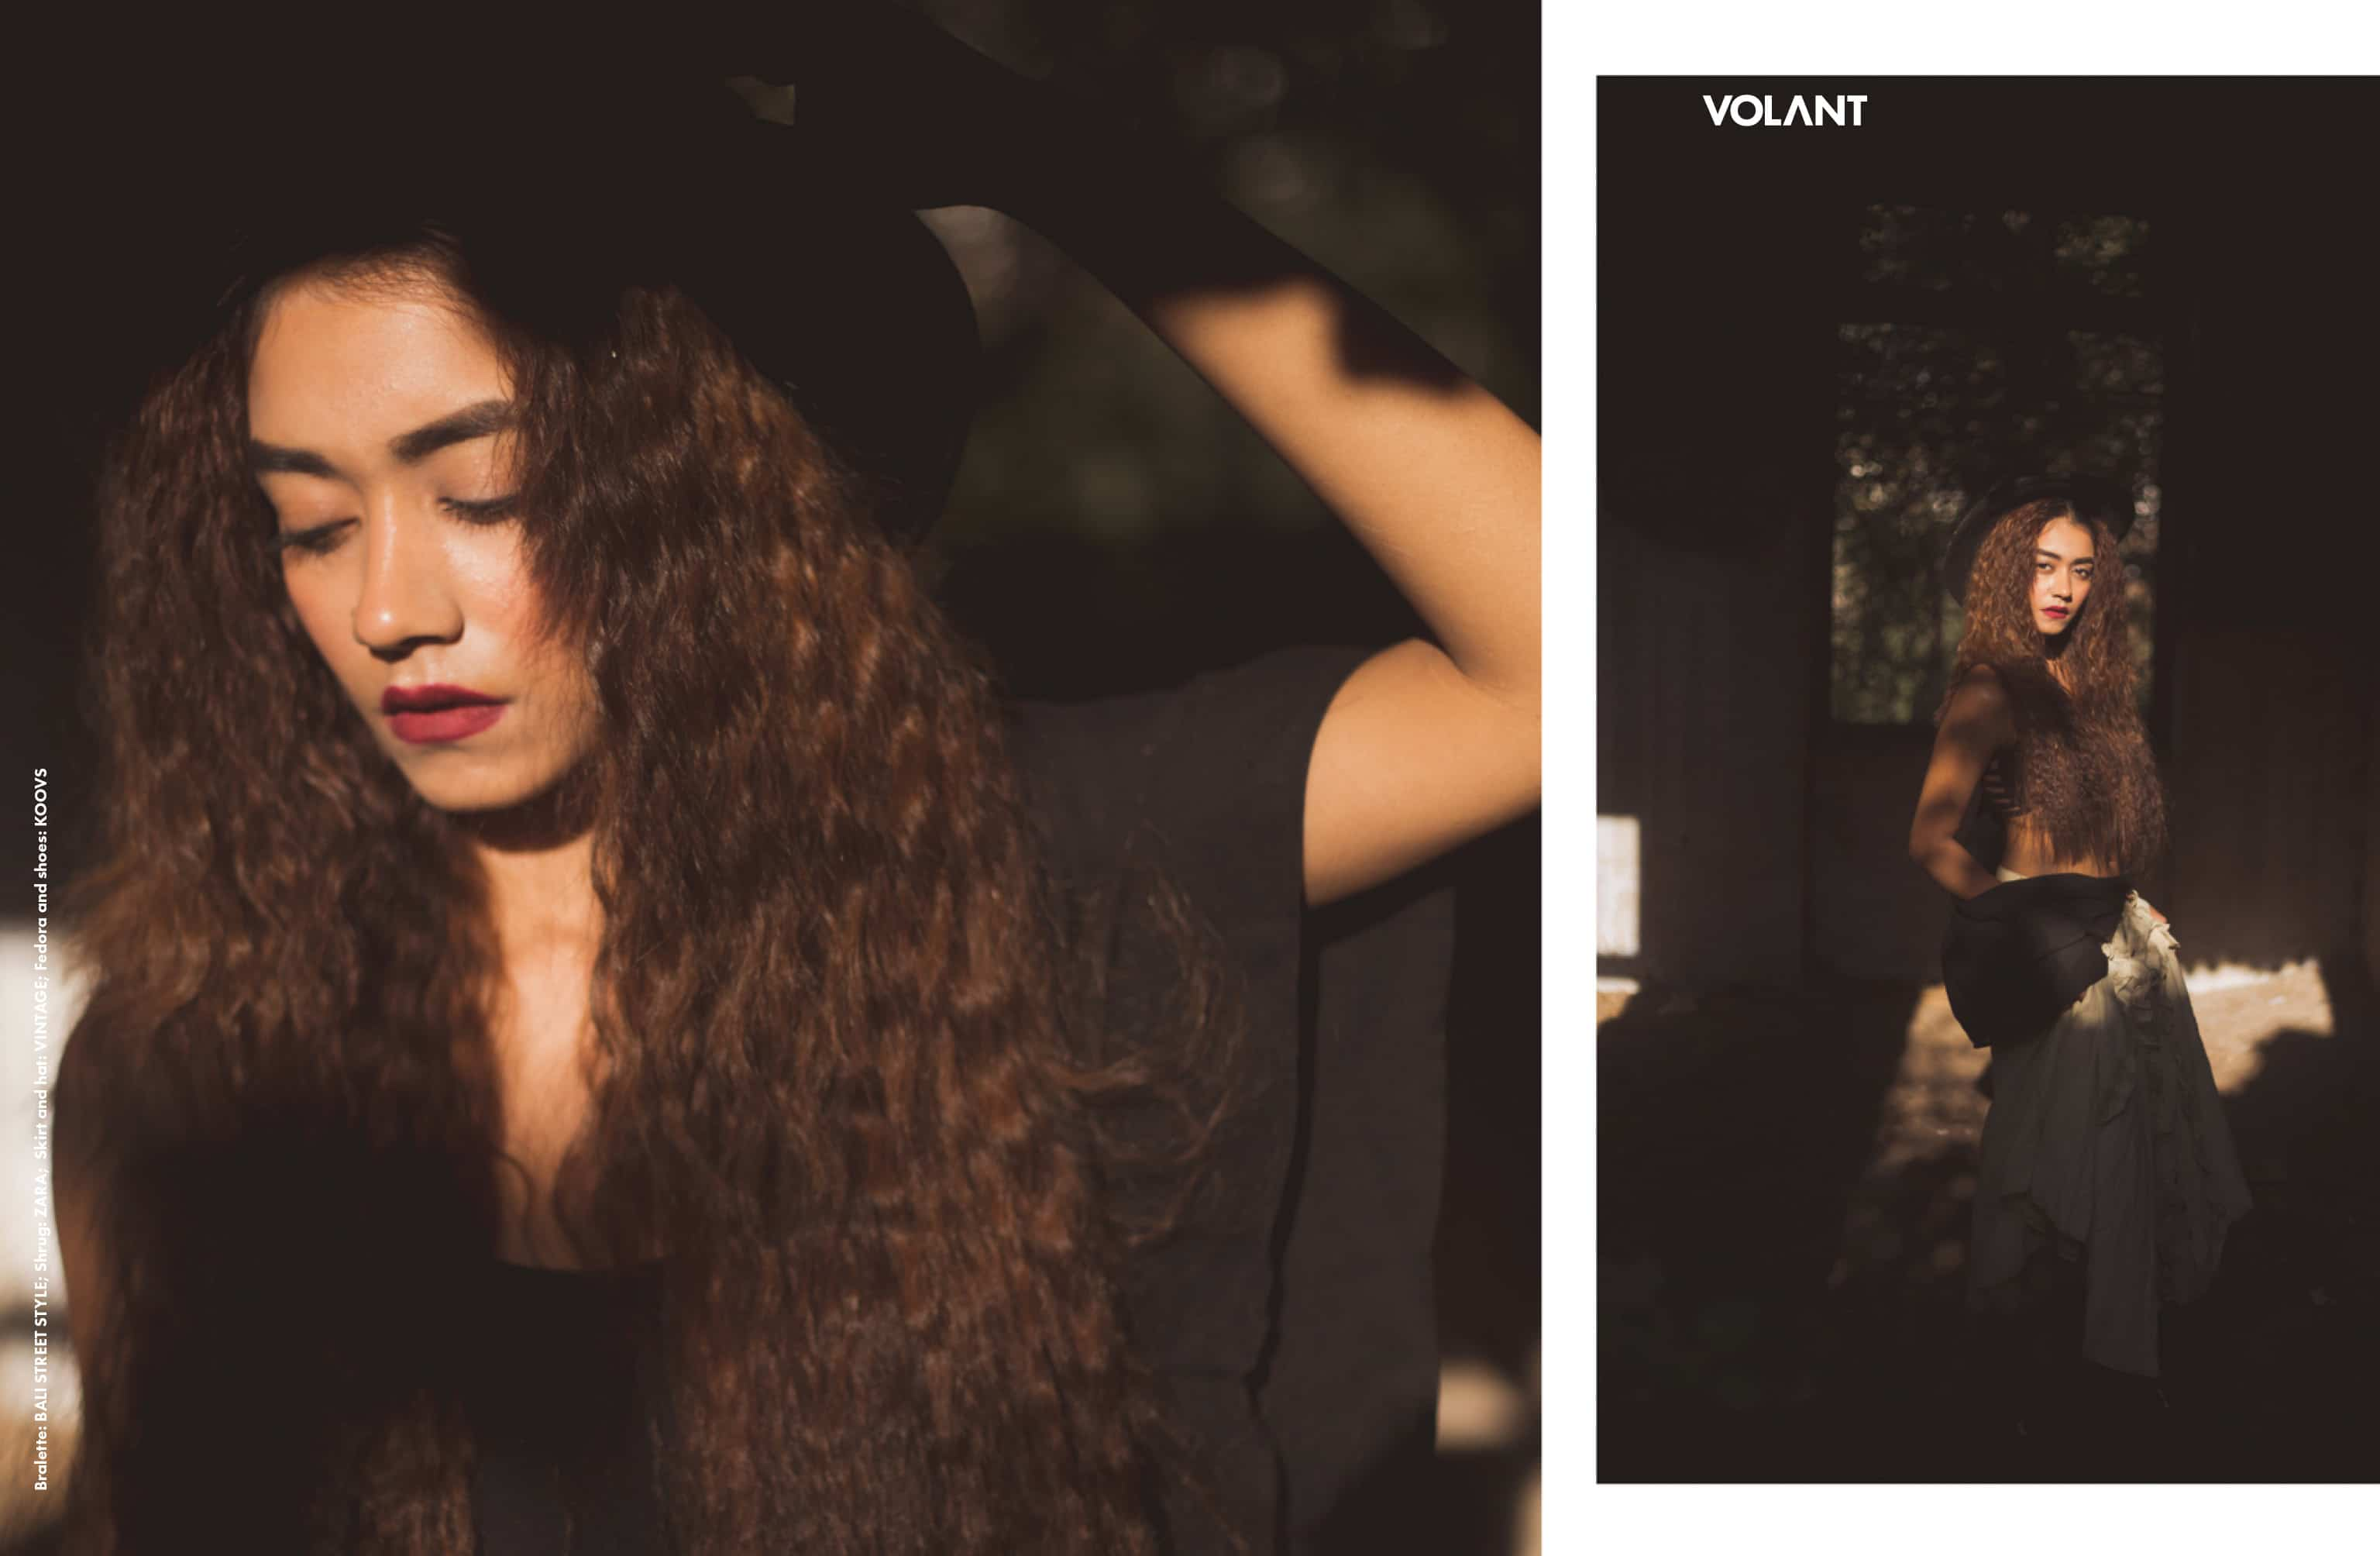 volant-webitorial-todayiwillletthepicturestalk2